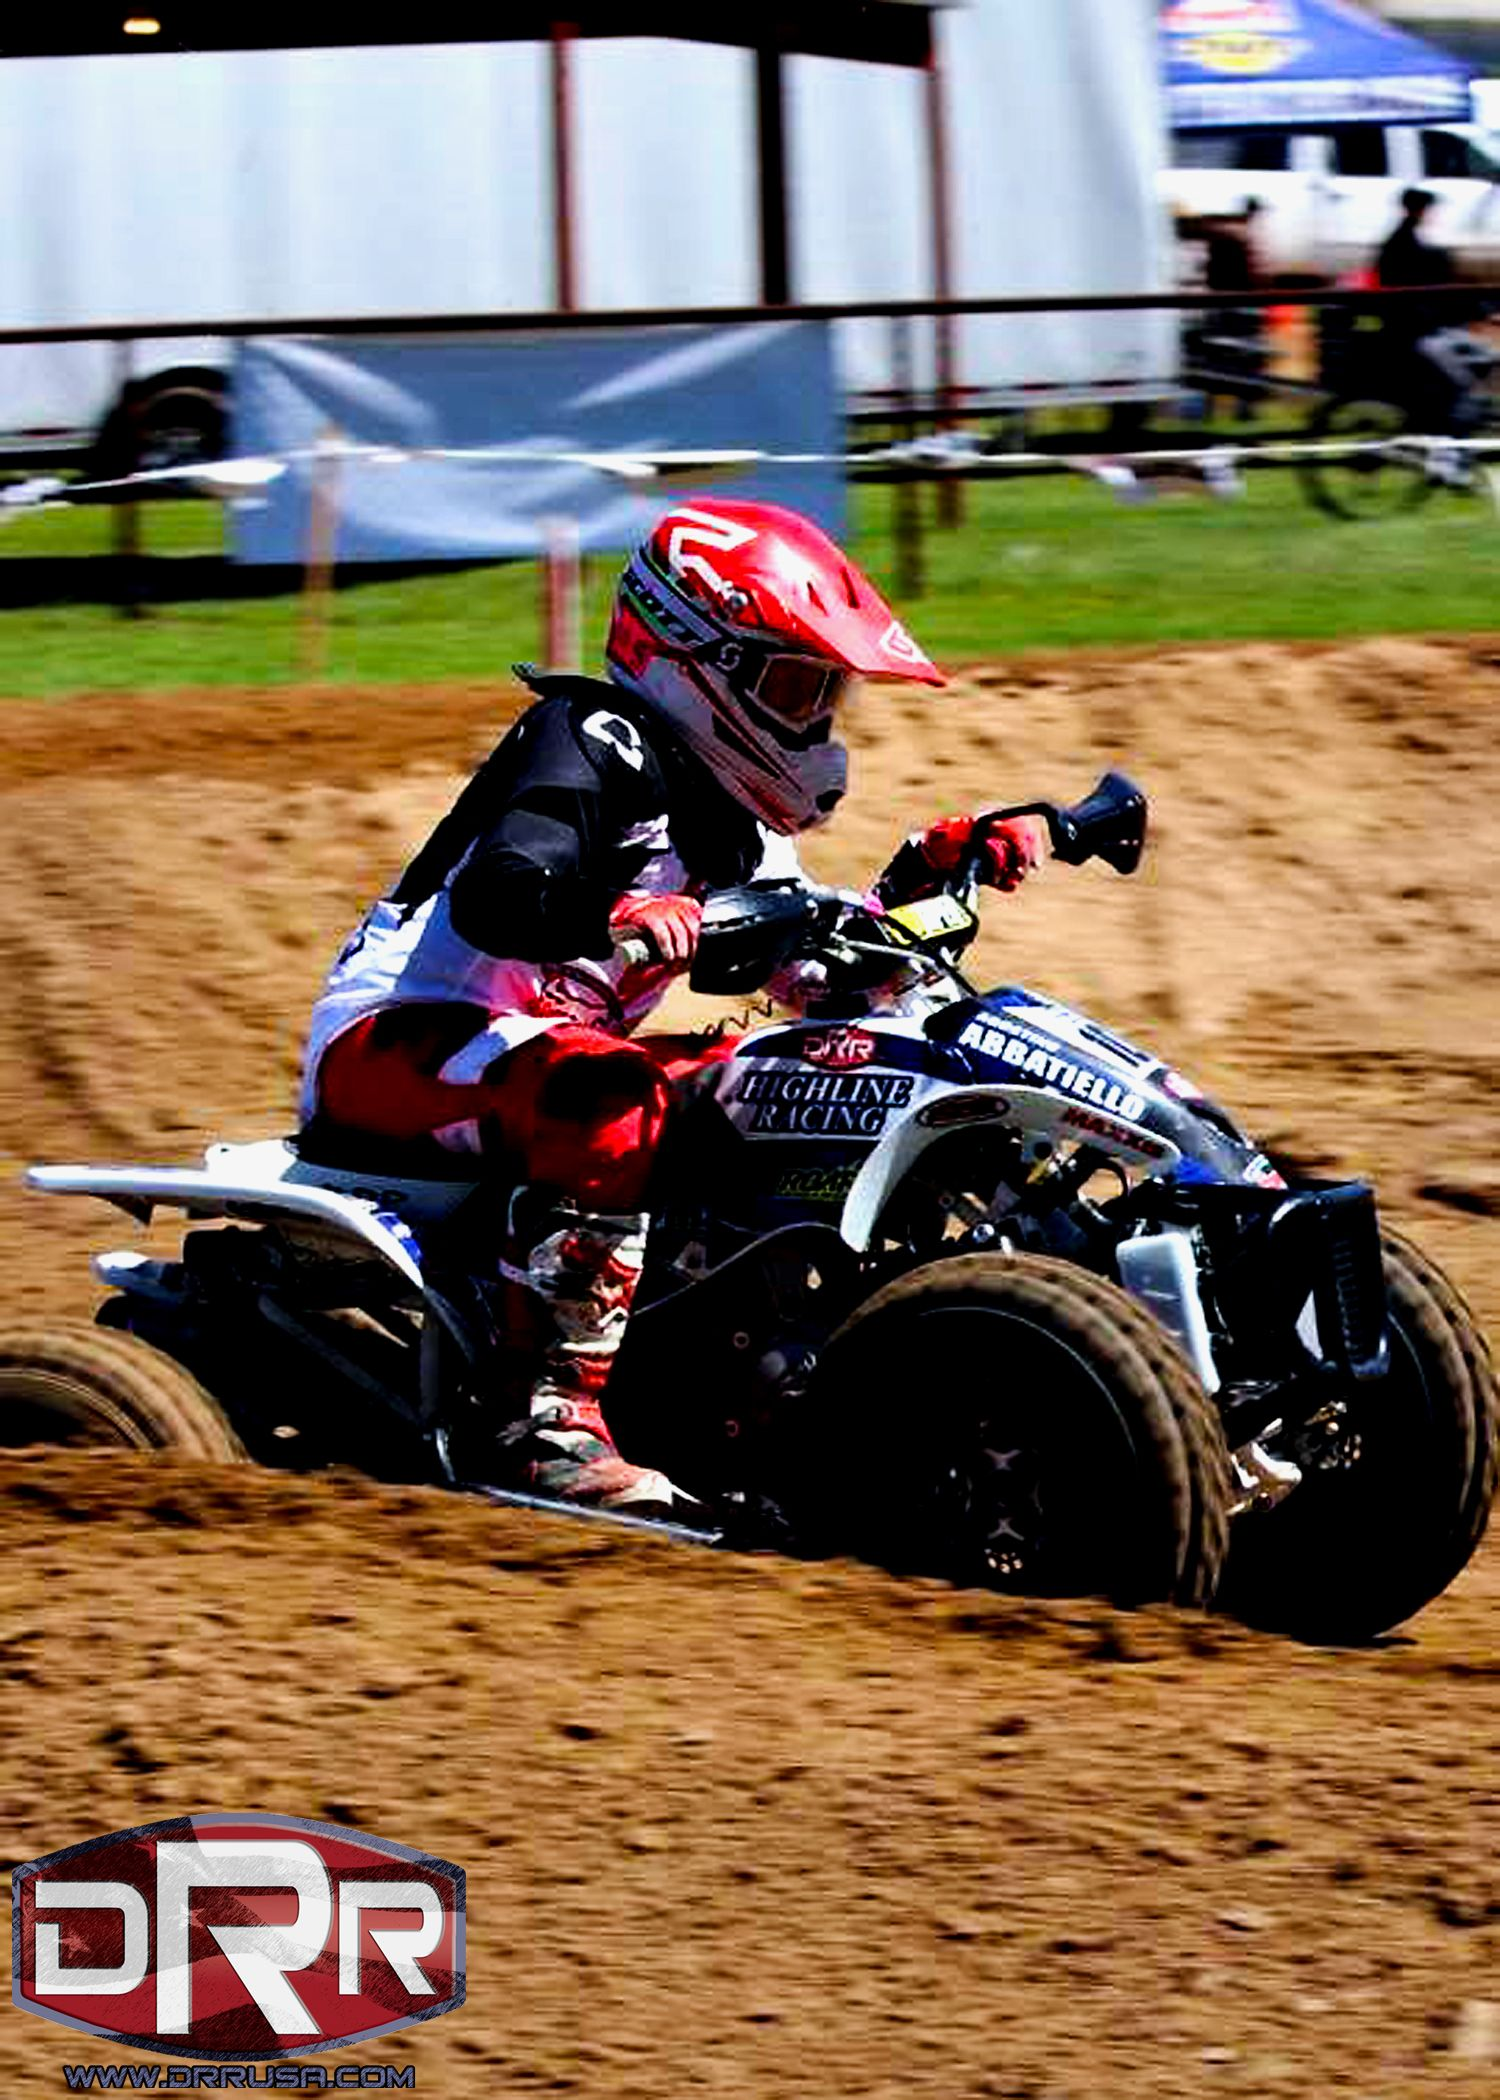 Pin On Drr Atvs Mini Quads In Action